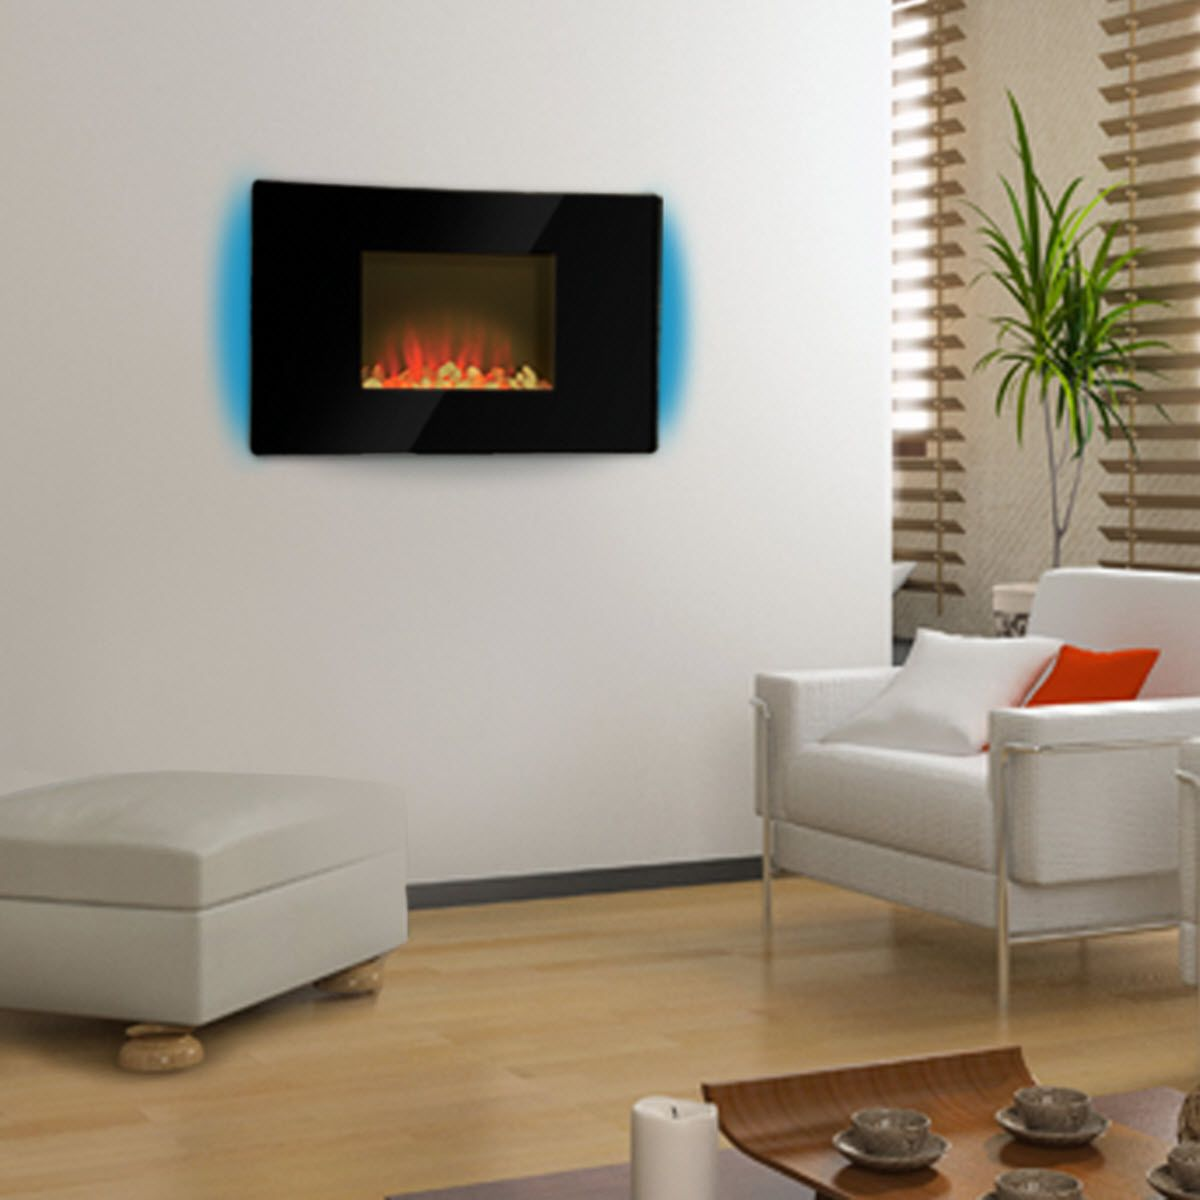 "Comfort Earth Kendall 35"" LED Wall-Mount Electric Fireplace with Remote Control - Black"